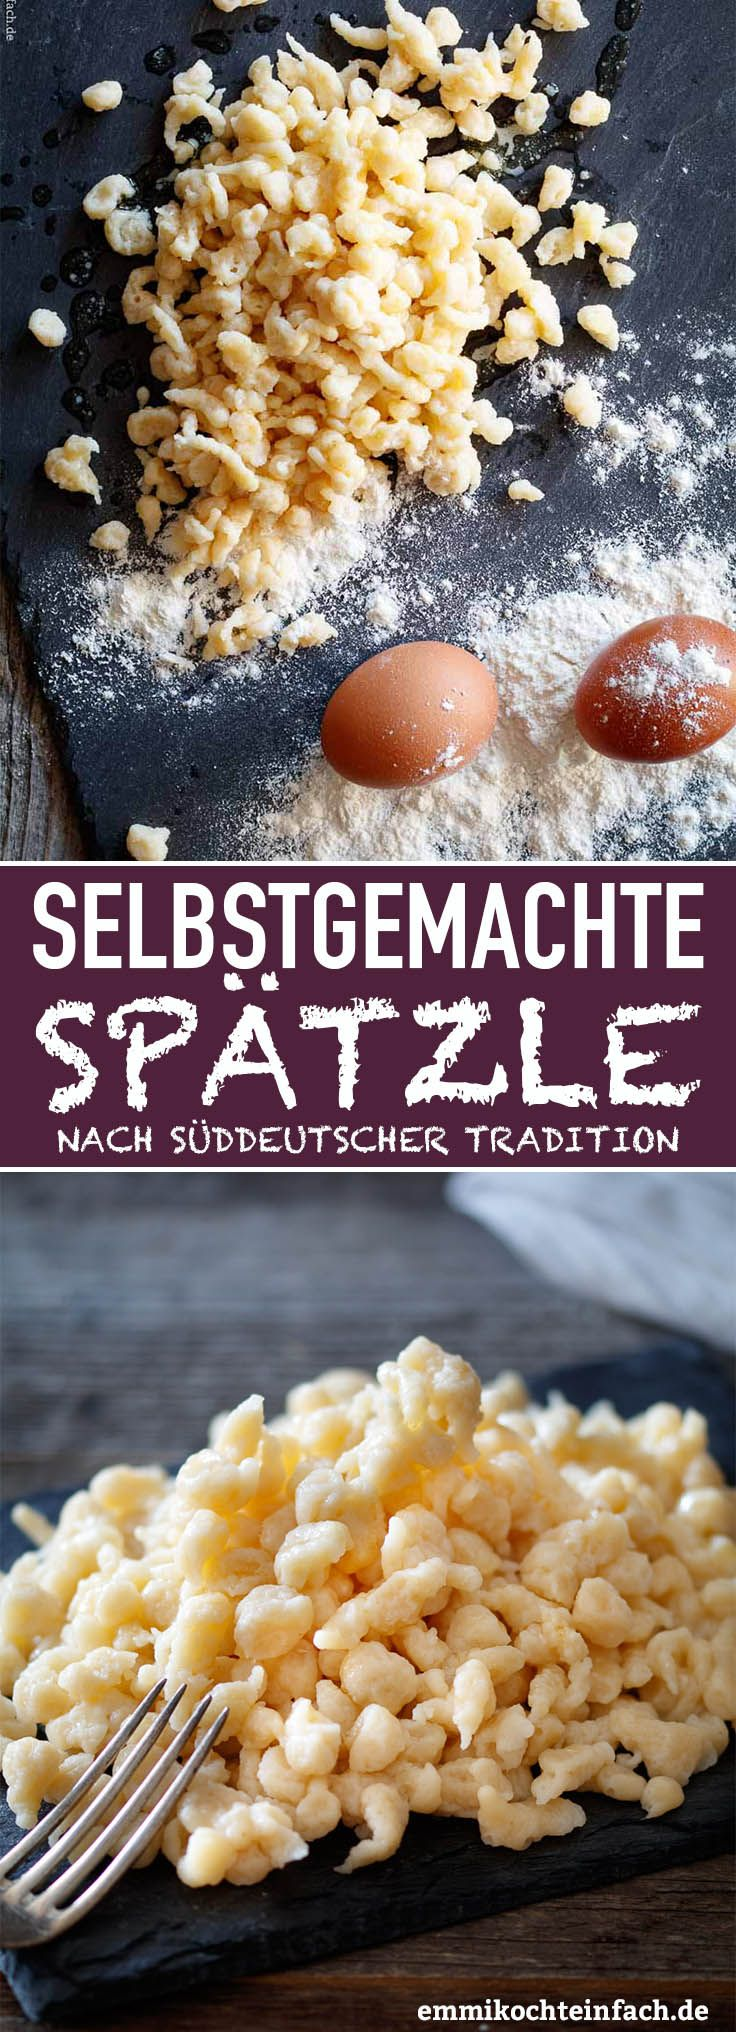 Photo of Omis homemade spaetzle according to southern German tradition – easy to cook